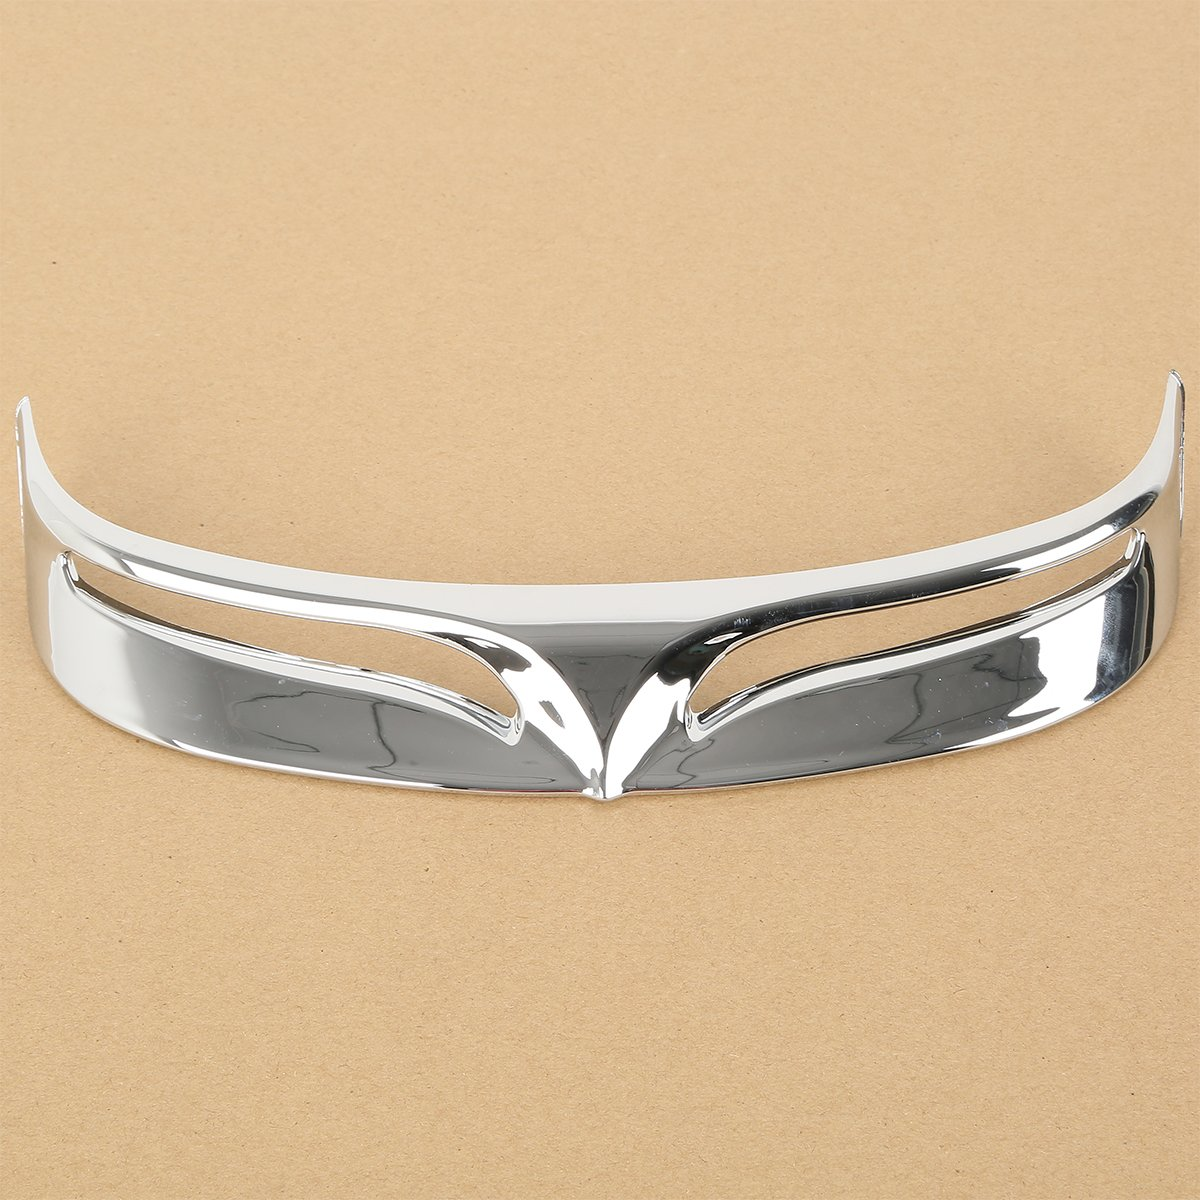 XFMT Chrome ABS Rear Fender Tip Trailing Edge Compatible with Harley Fatboy FLSTF 2009 2010 2011 2012 2013